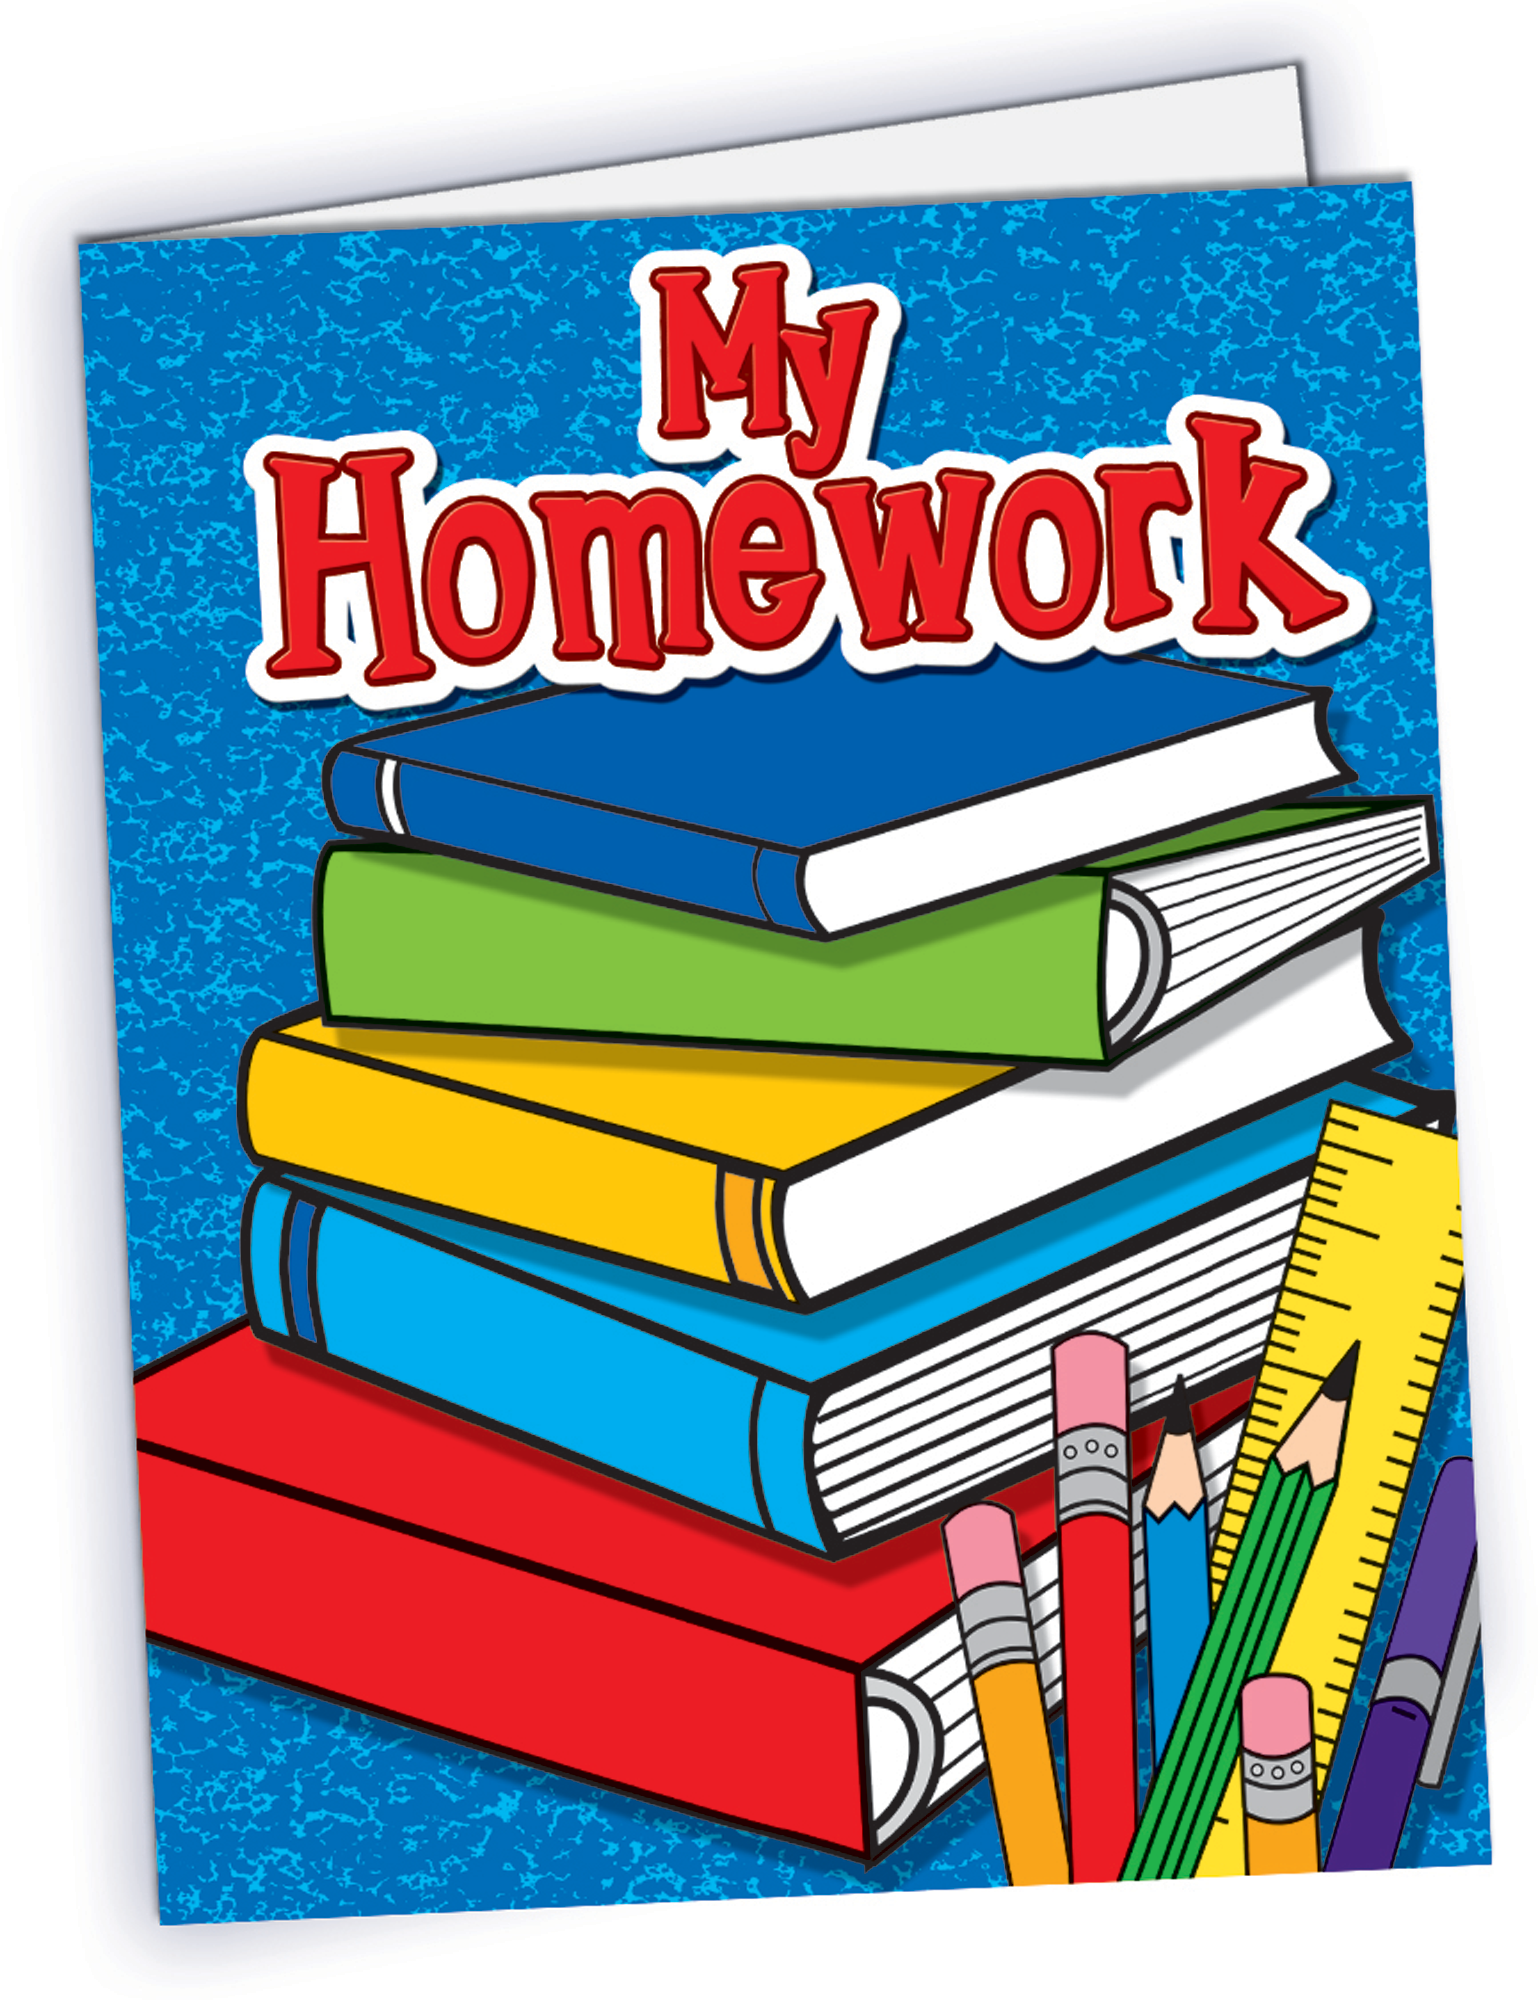 I tried to do my homework by jack prelutsky